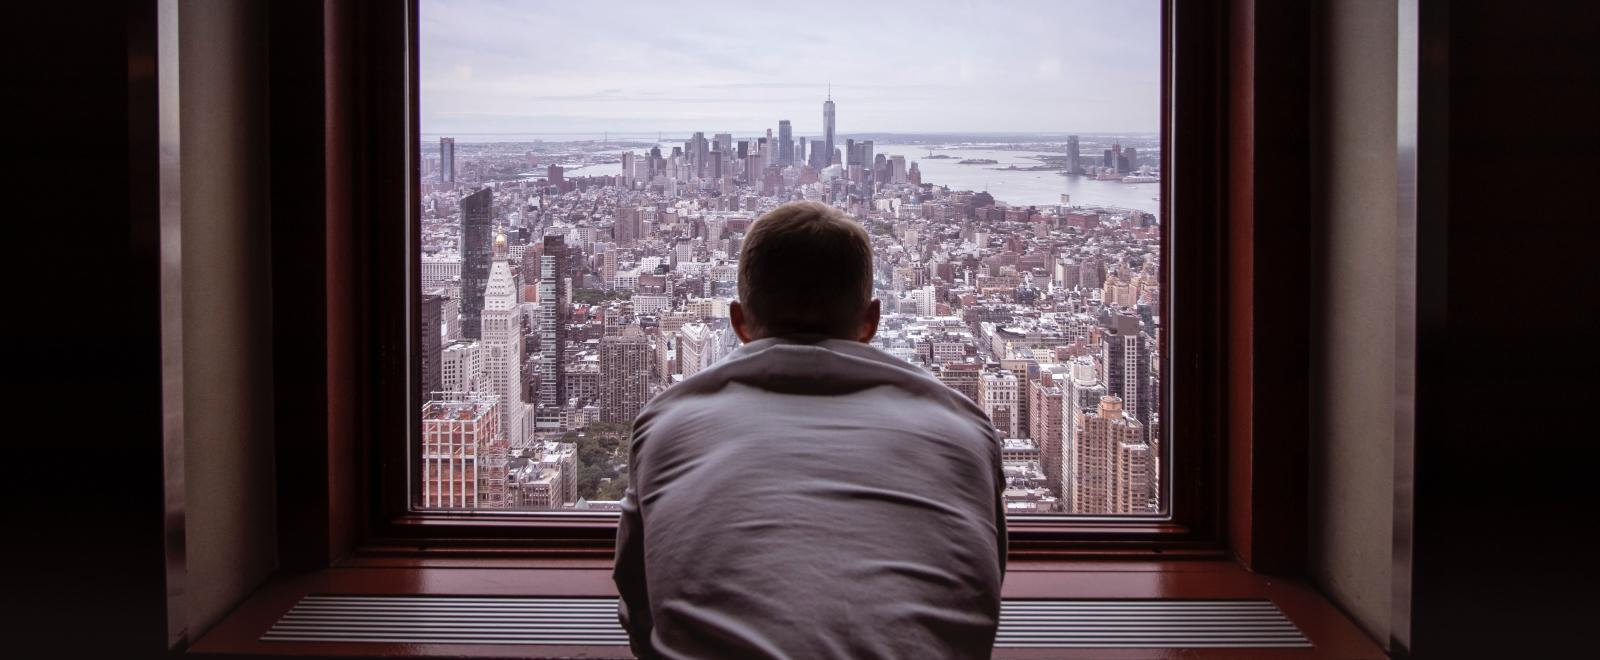 Traveller in lockdown in New York City is self-isolating and stuck at home